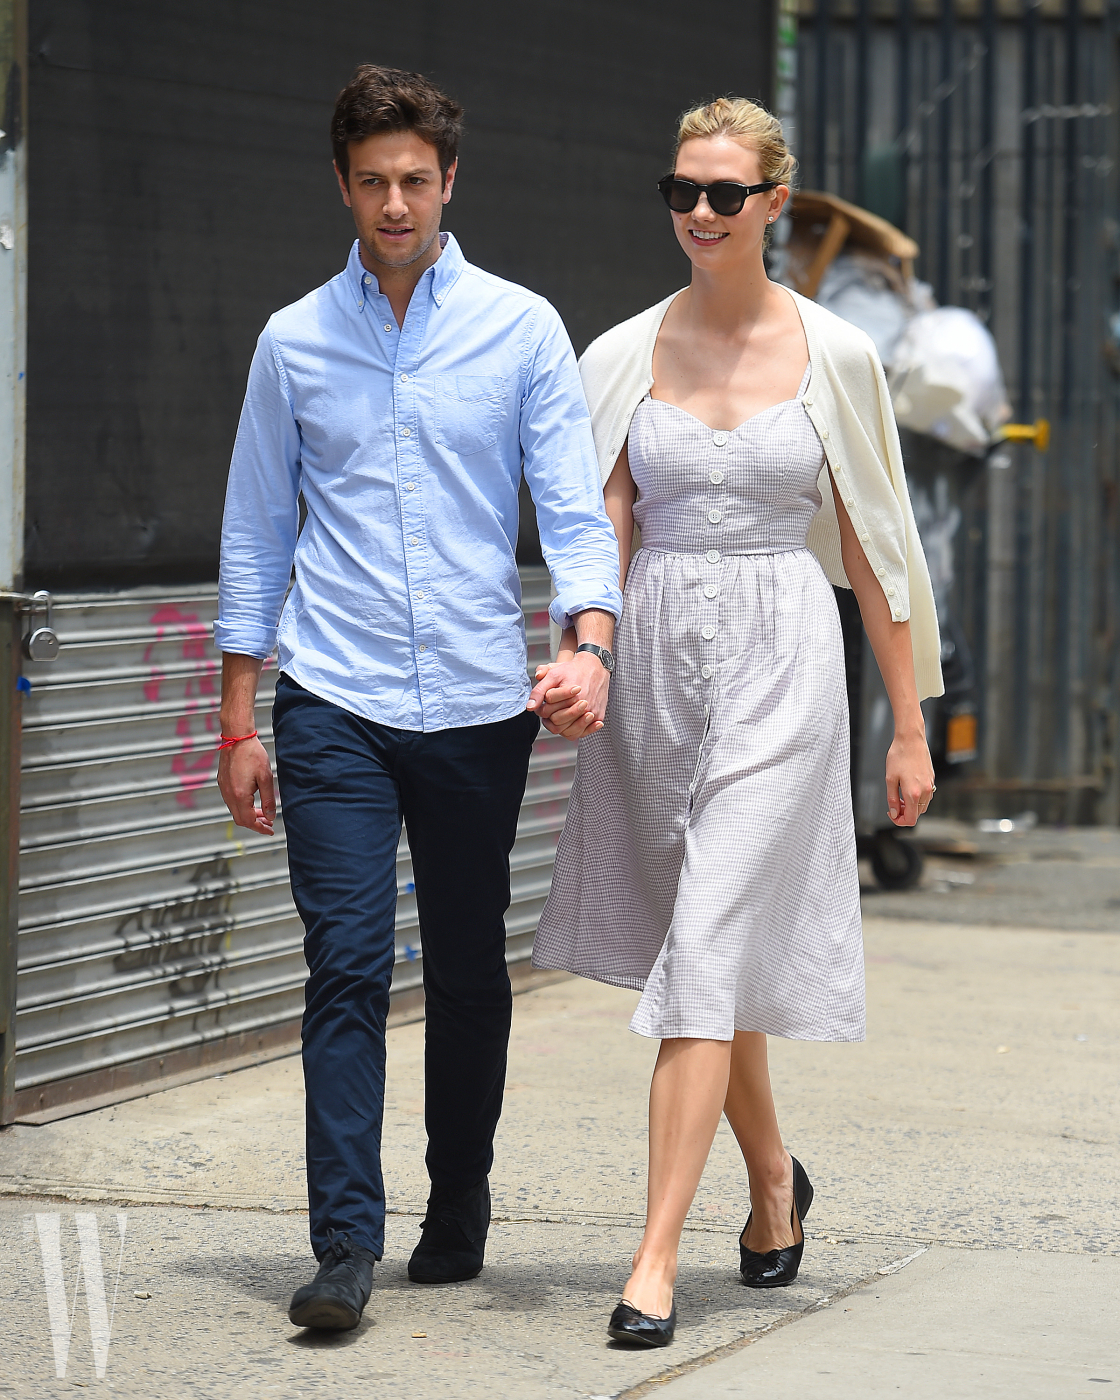 Karlie Kloss and Joshua Kushner seen holding hands in Soho,New York City